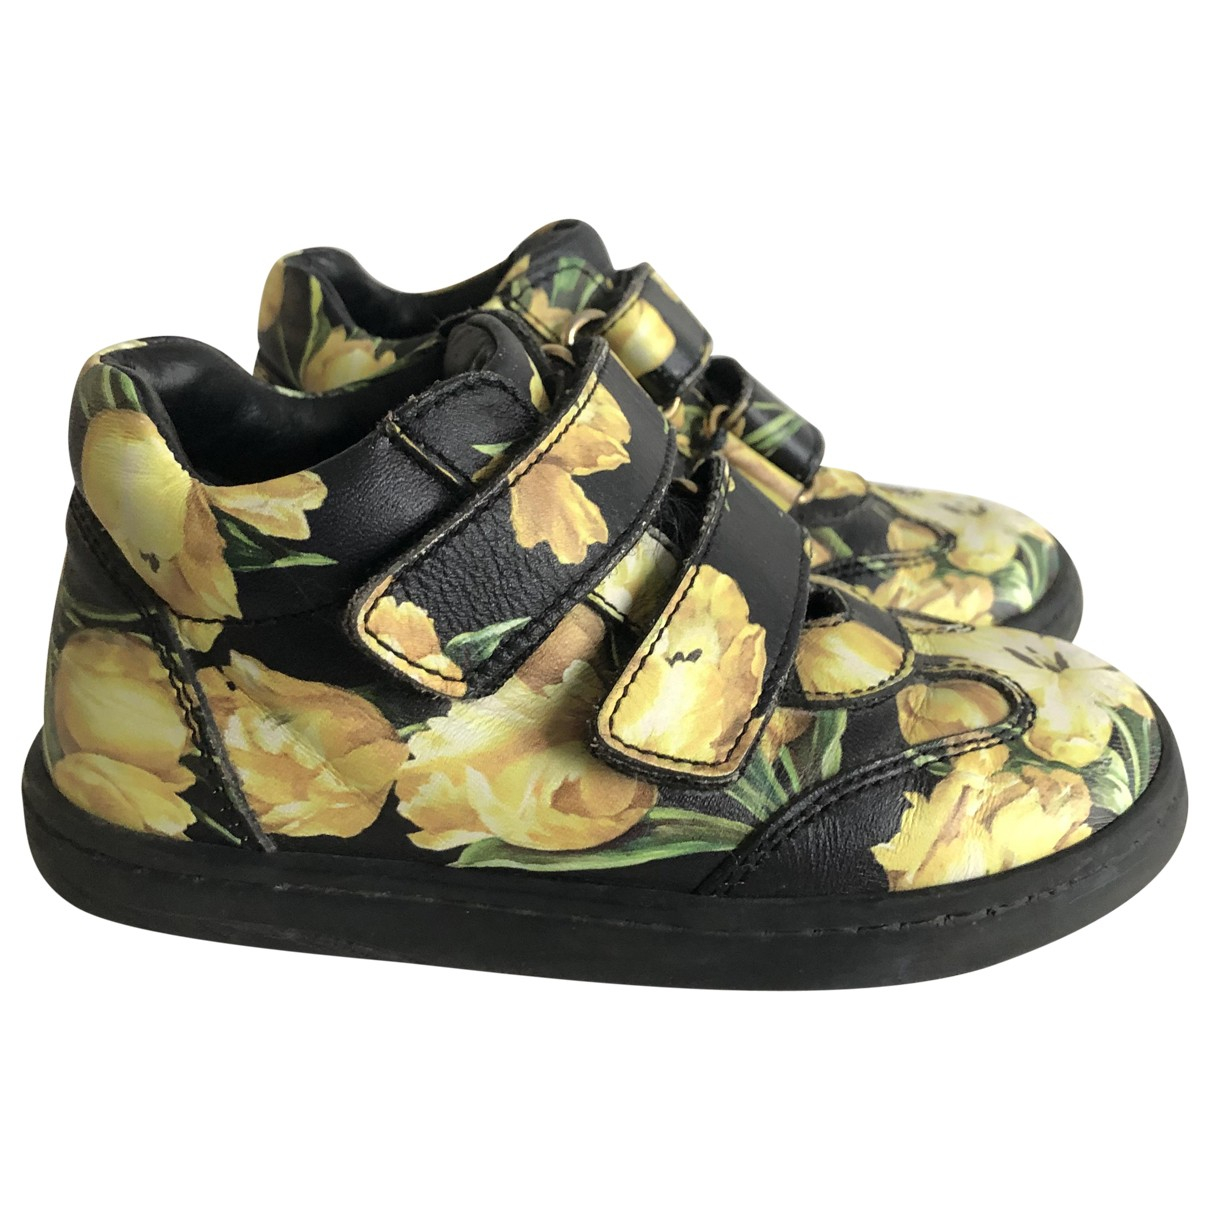 Dolce & Gabbana N Multicolour Leather Trainers for Kids 24 FR